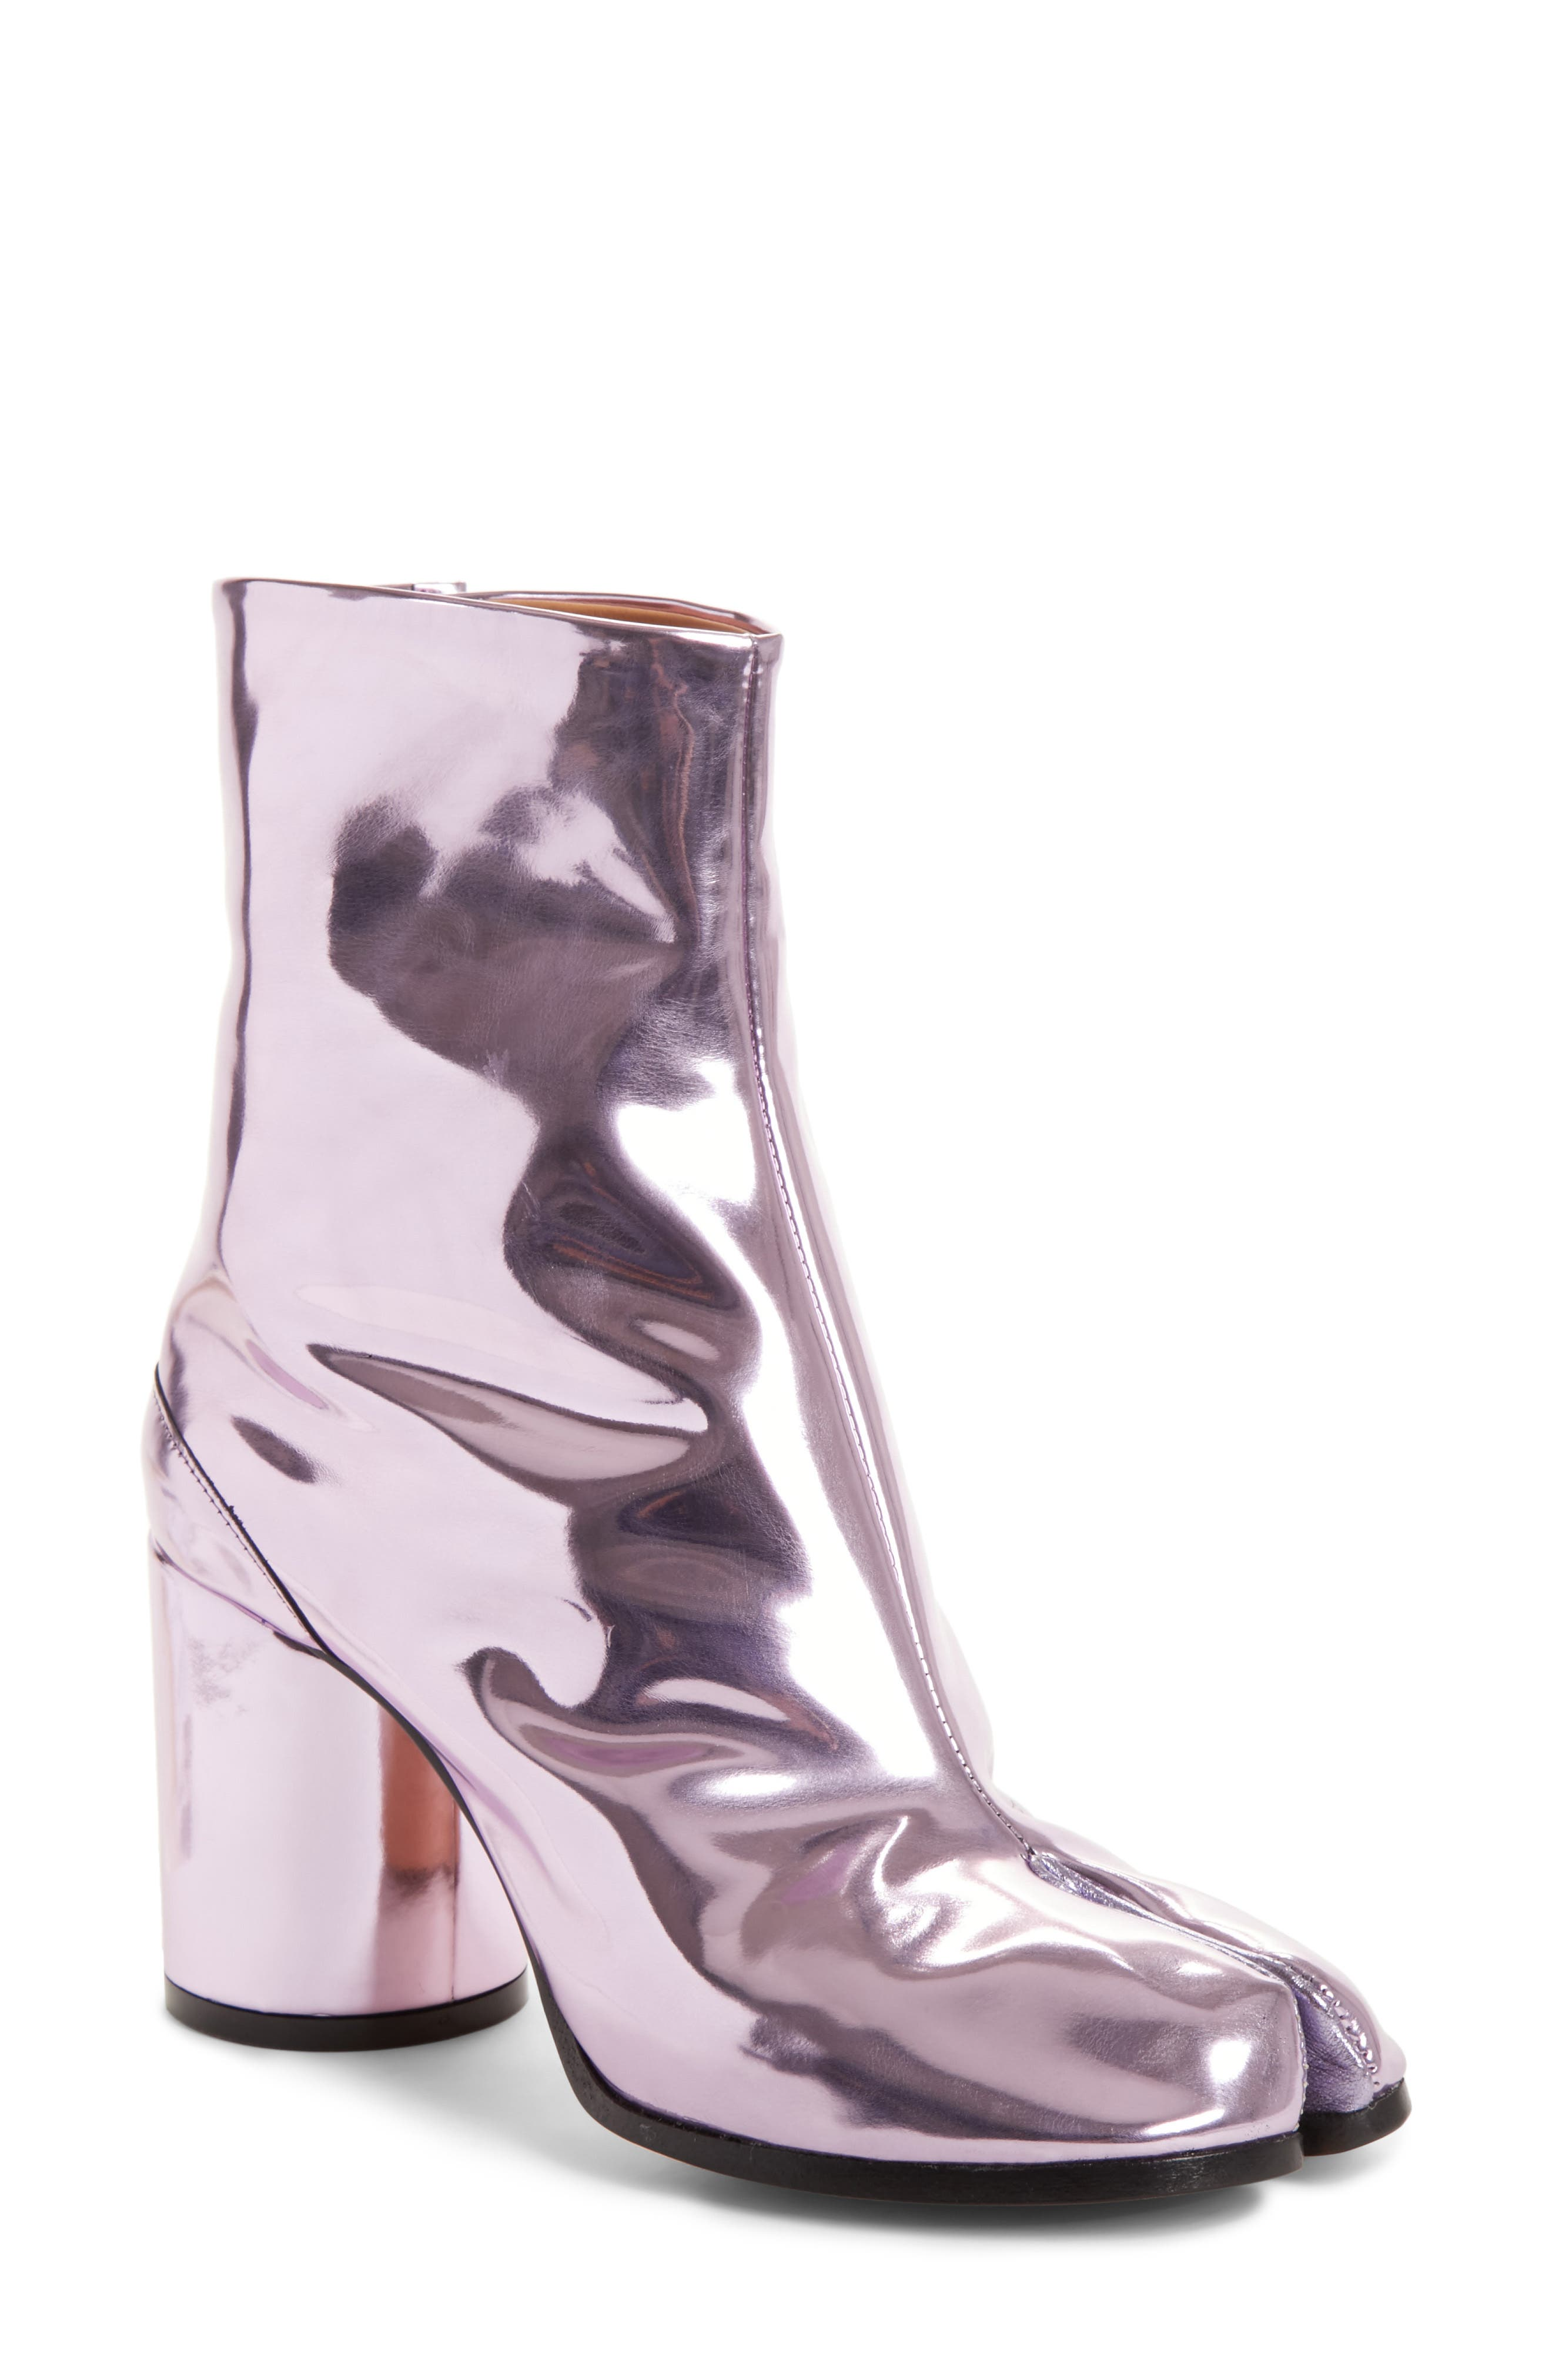 Maison Margiela Tabi Metallic Ankle Boot (Women)